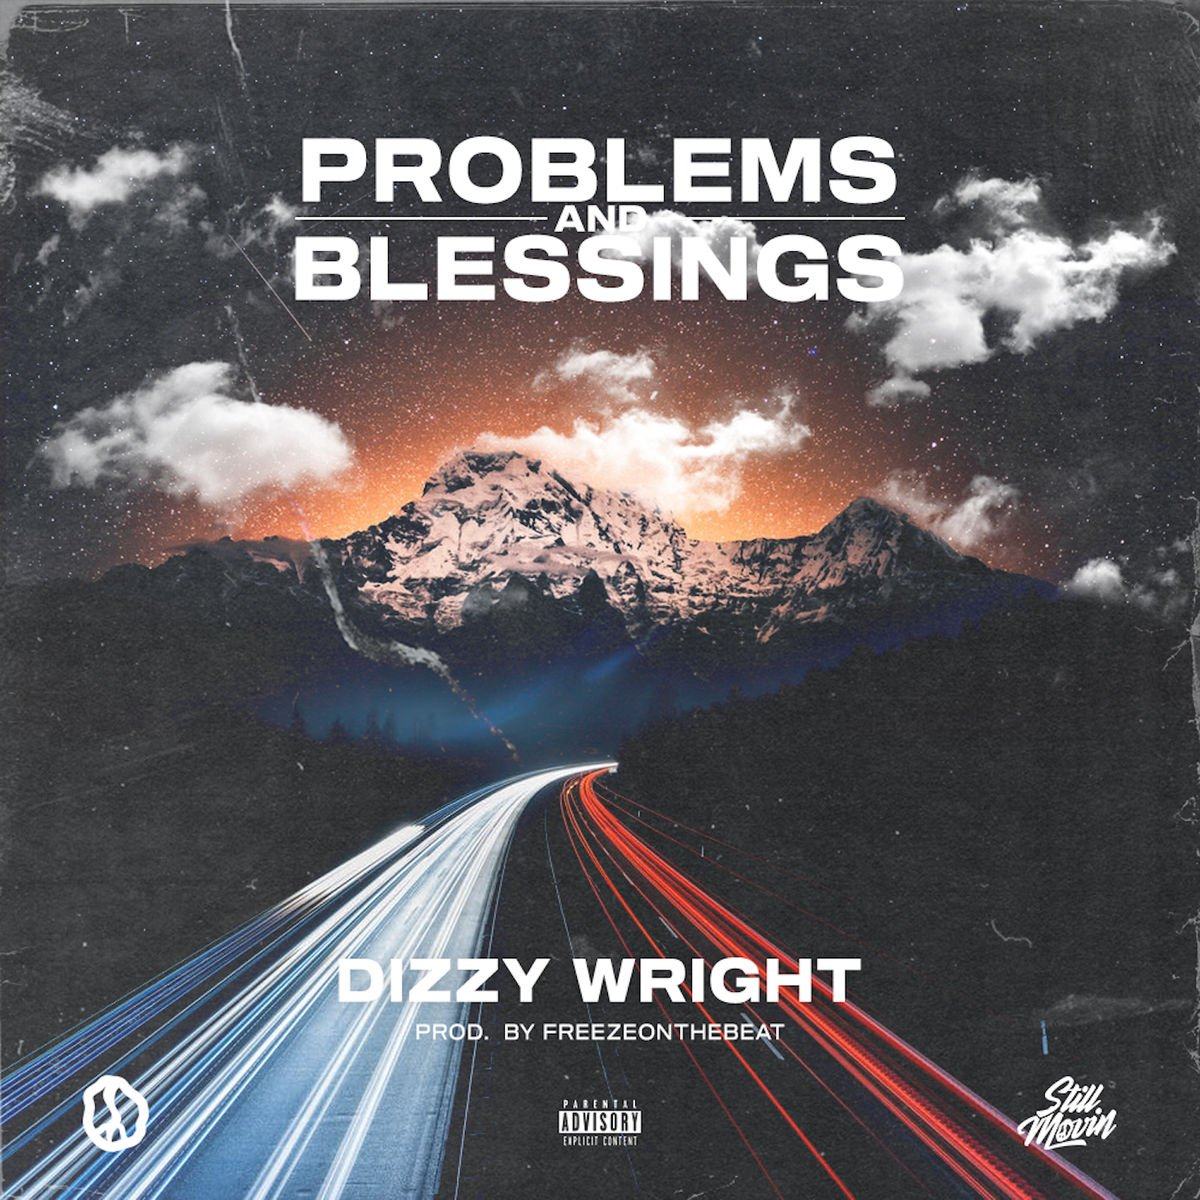 """New Music: Dizzy Wright – """"Problems & Blessings"""""""